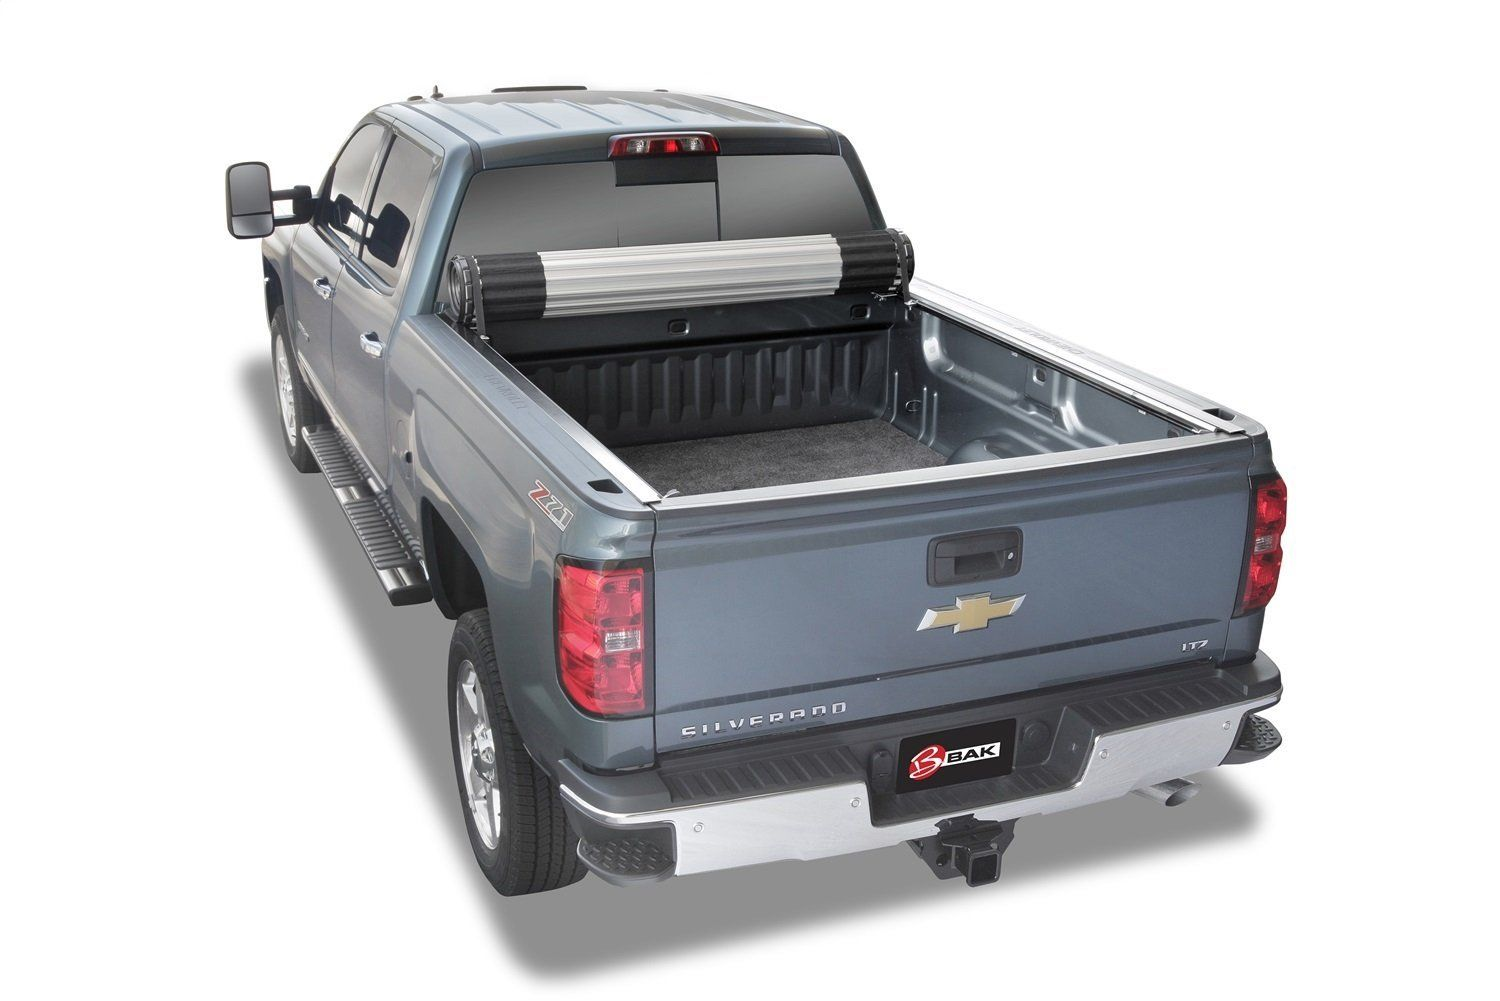 2. Top 10 Best Truck Bed Covers Review in 2018 Truck bed